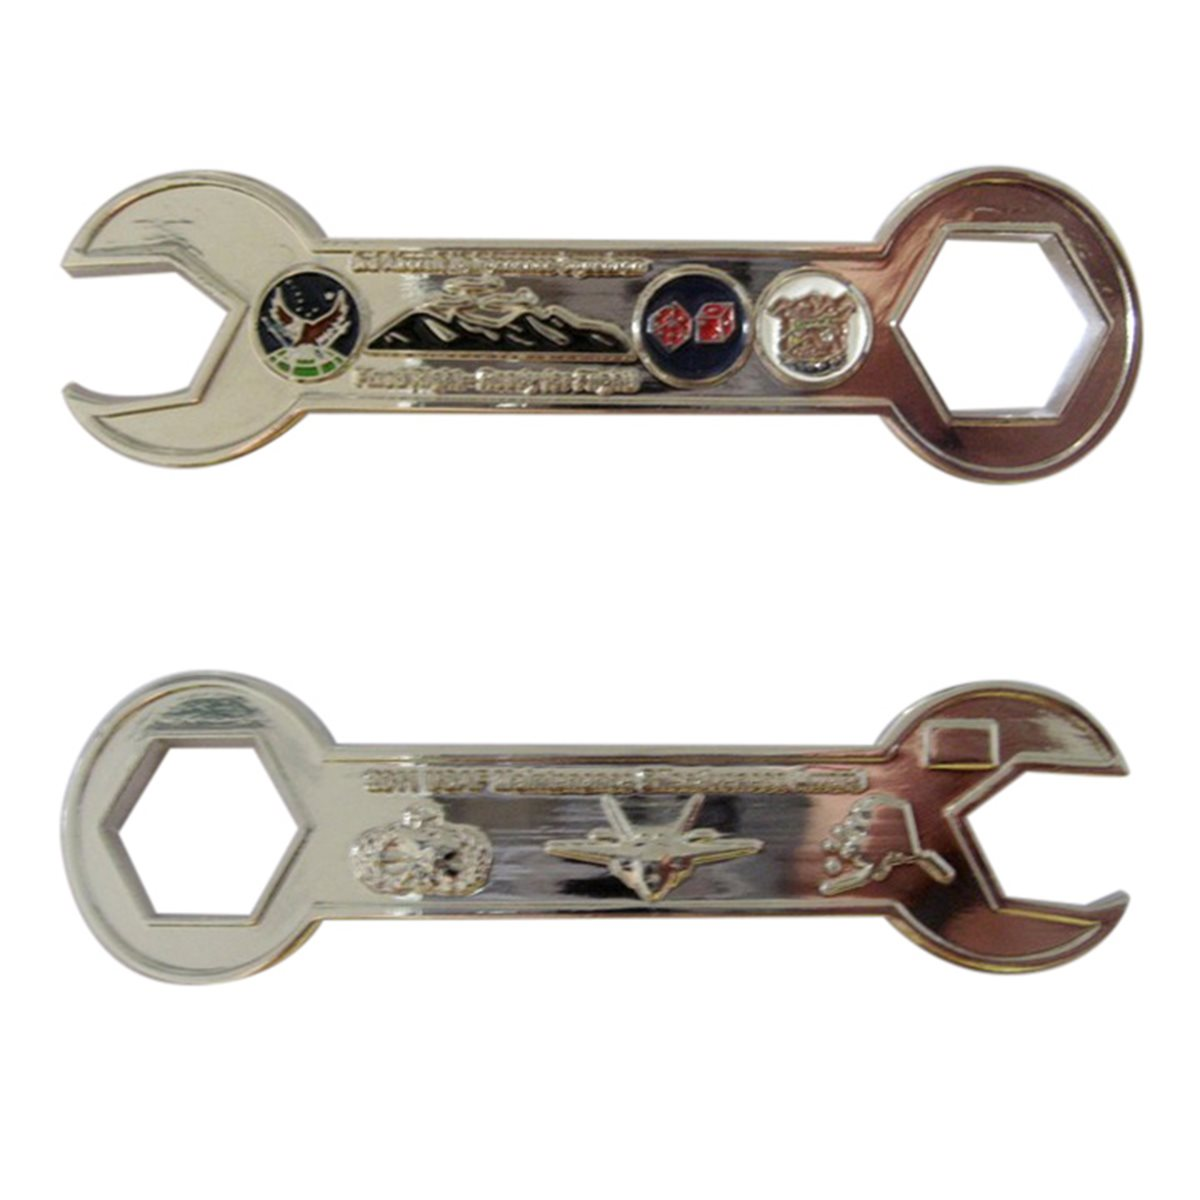 3 AMXS Wrench Bottle Opener SAMPLE.jpg?quality=85